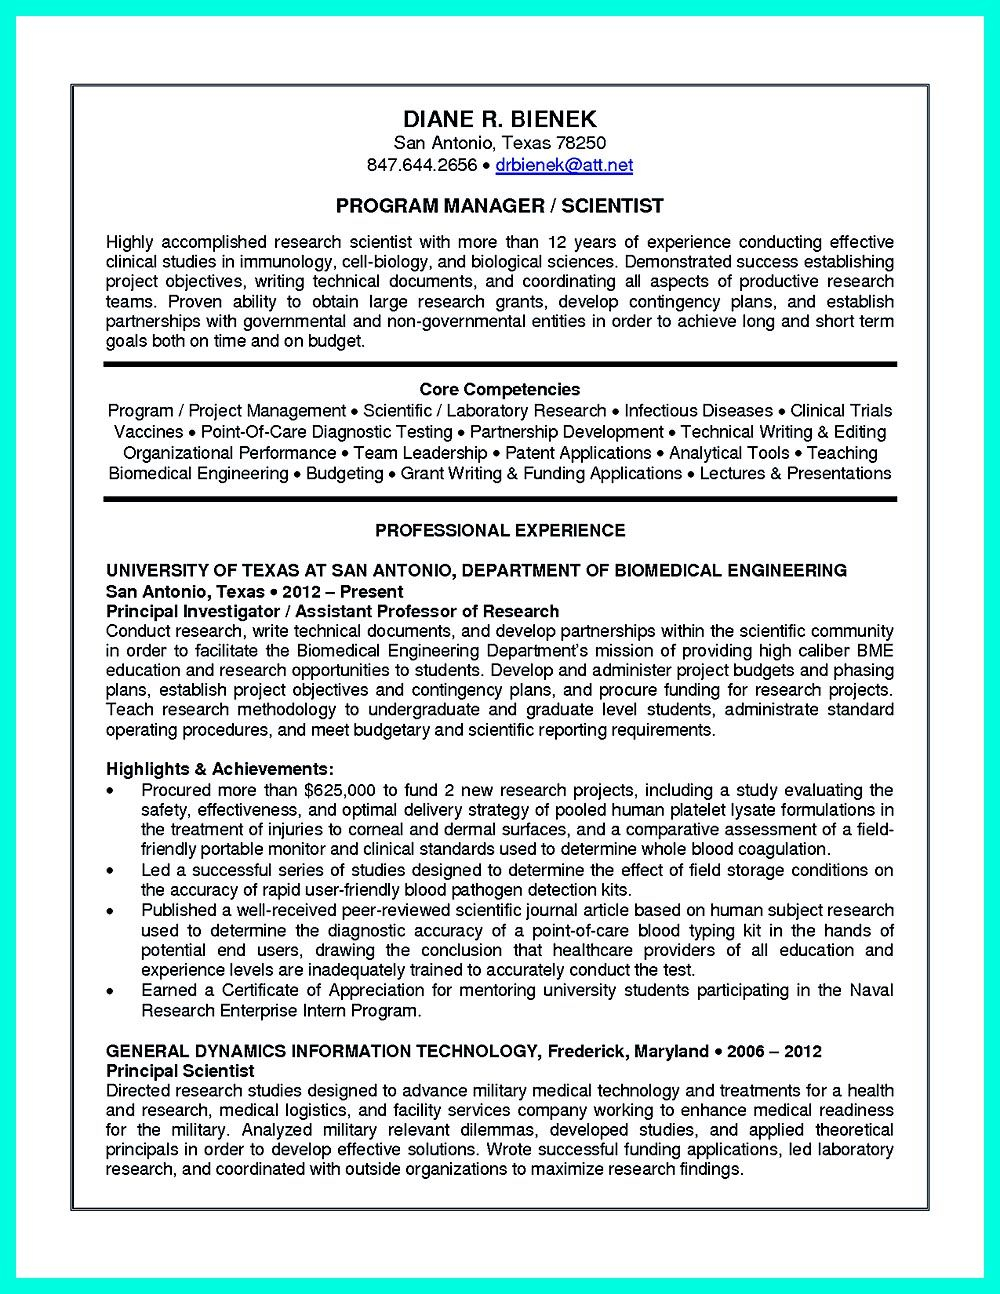 Clinical Research Coordinator Resume Objective - Clinical Research associate Resume Objectives are Needed to Convince